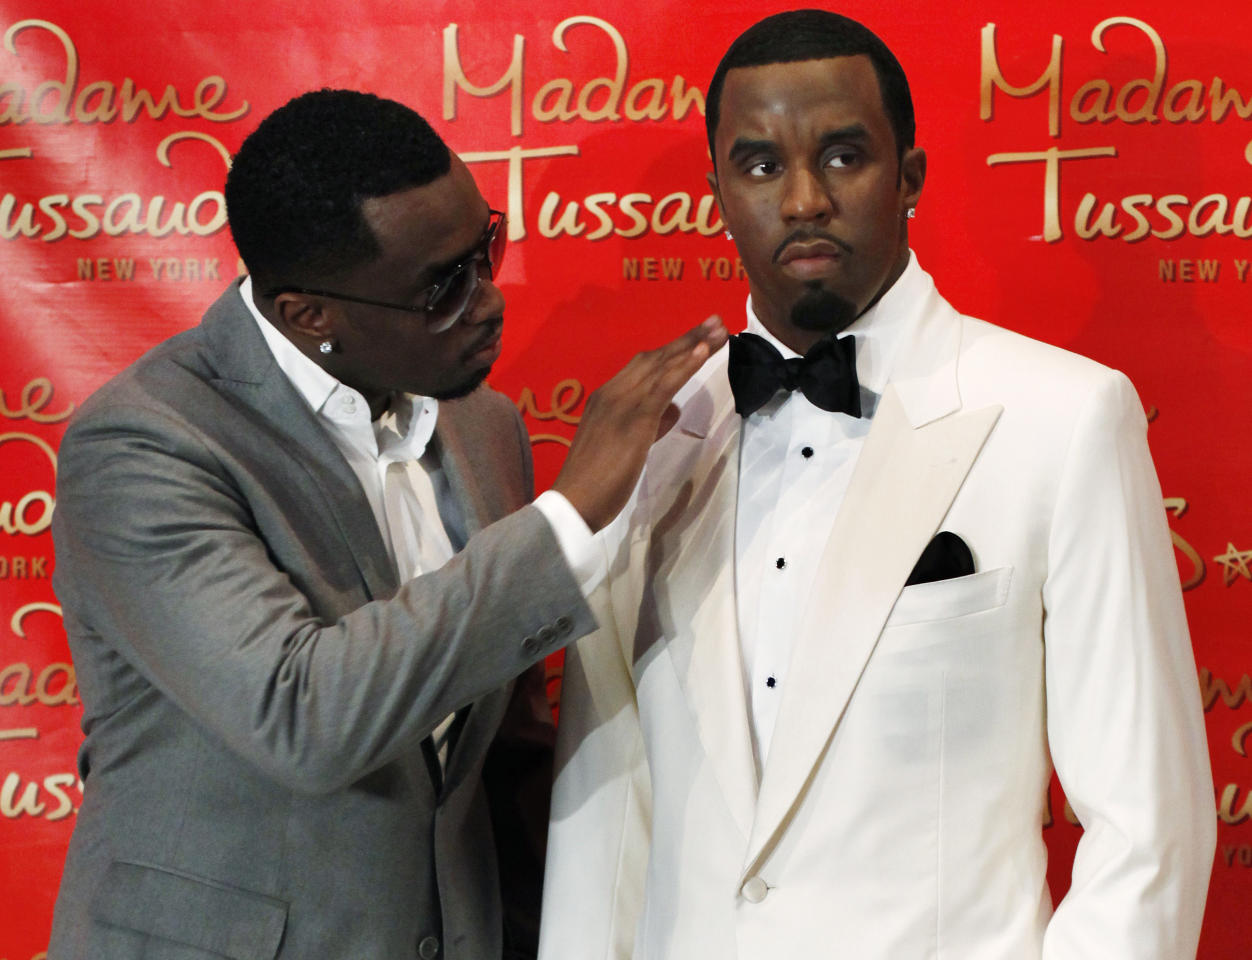 """Sean """"Diddy"""" Combs touches his wax figure at Madame Tussauds in New York, December 15, 2009. REUTERS/Shannon Stapleton"""